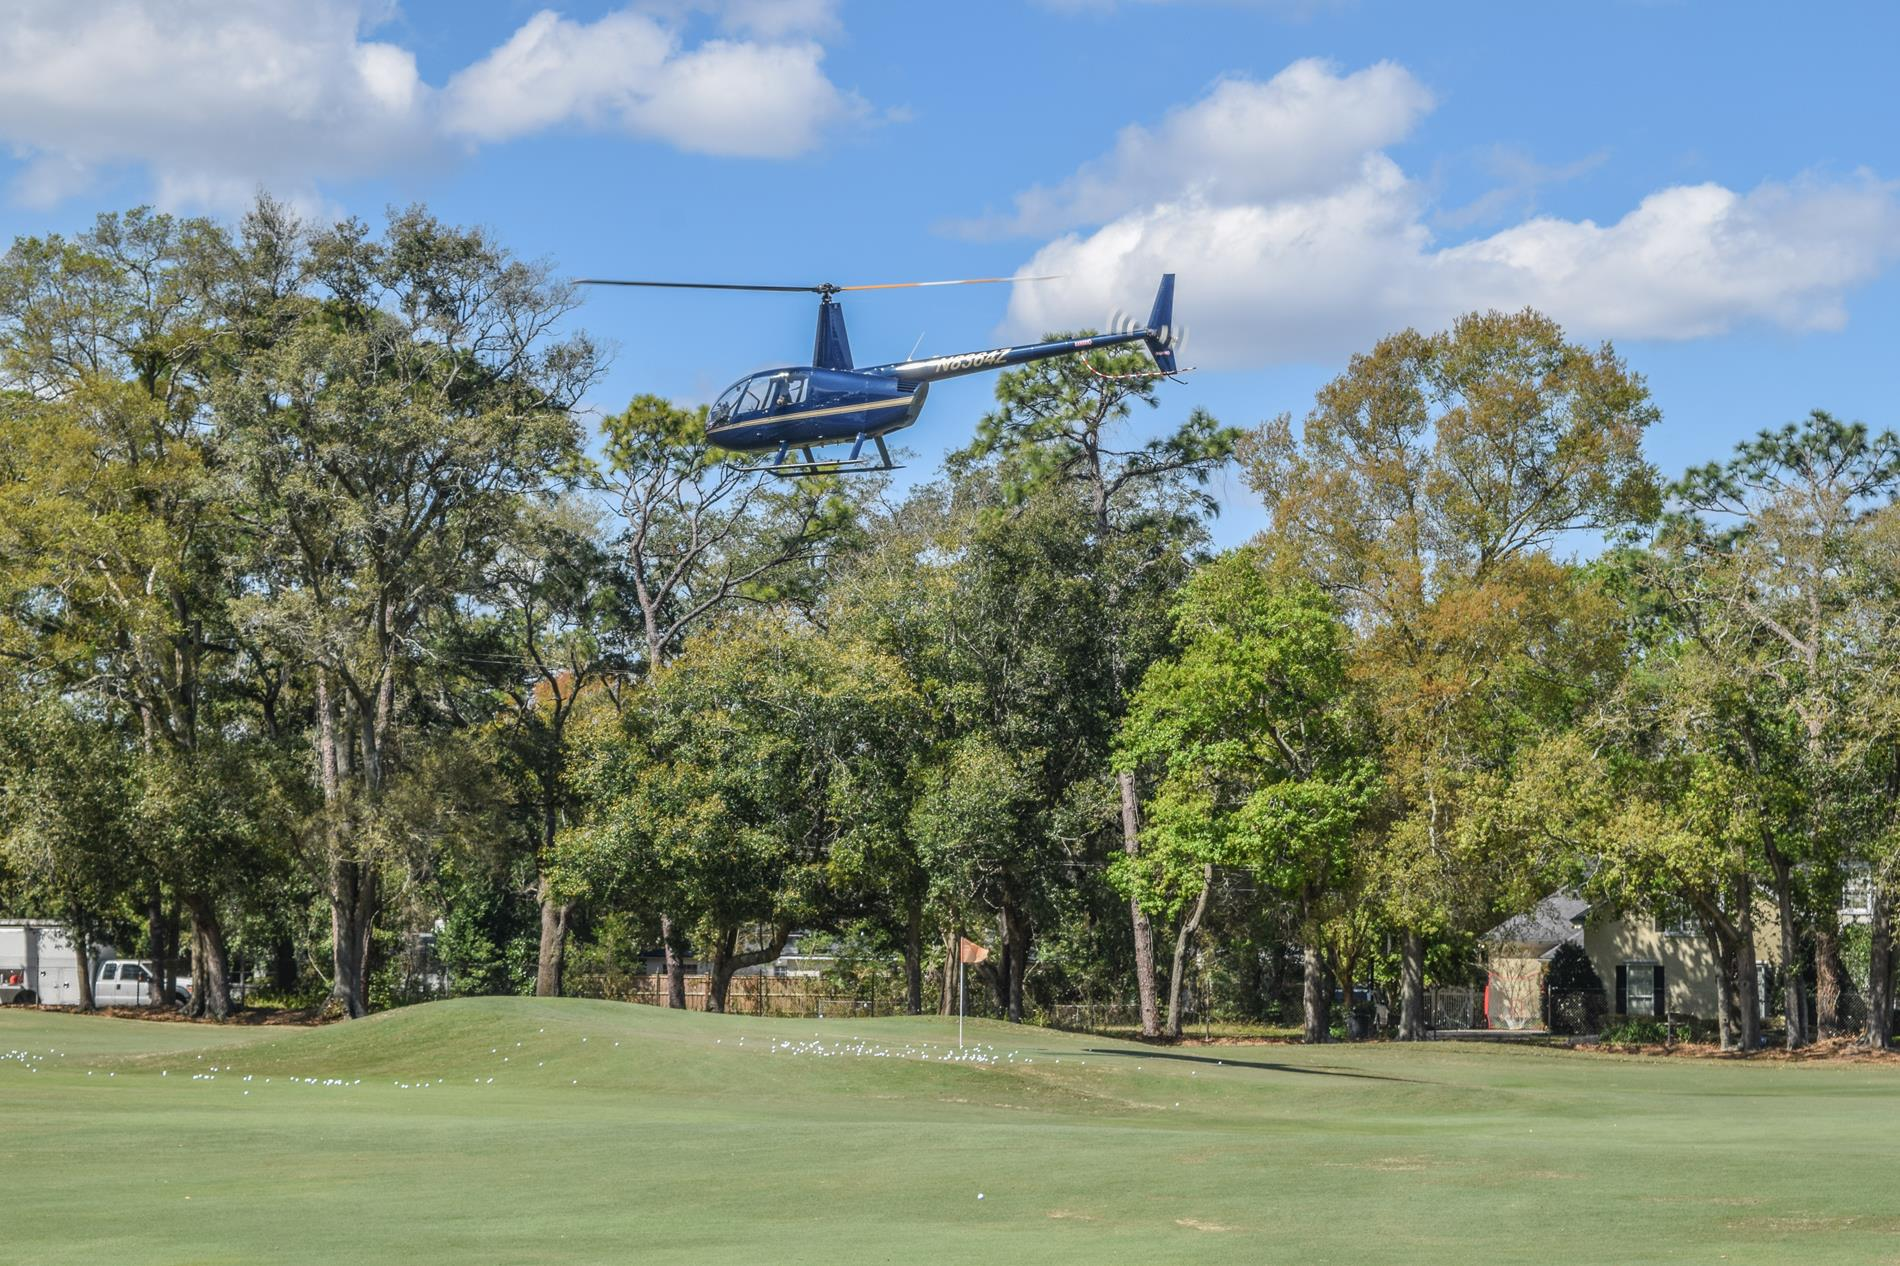 Helicopter Above the Golf Course